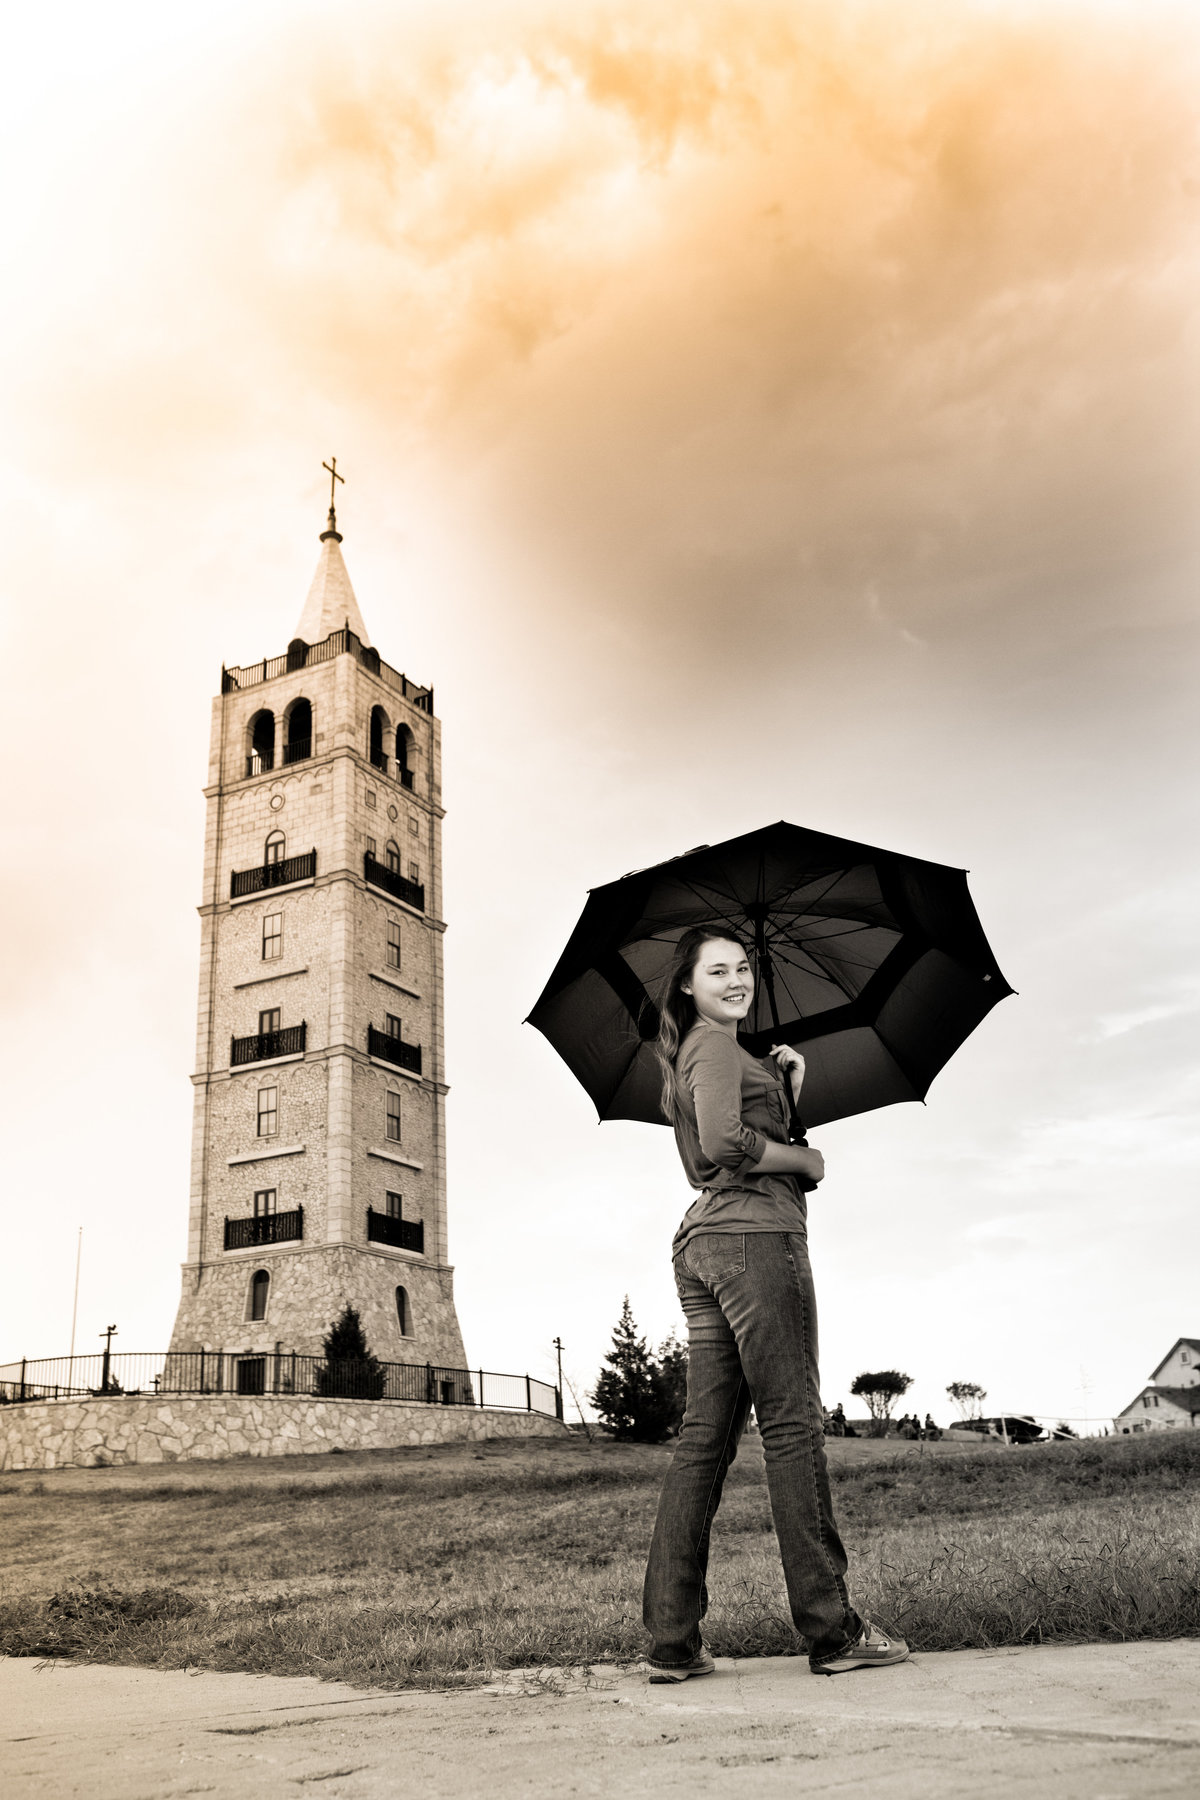 High school senior girl picture with umbrella standing with umbrella in front of tower at Adriatica Village McKinney Texas with ominous clouds